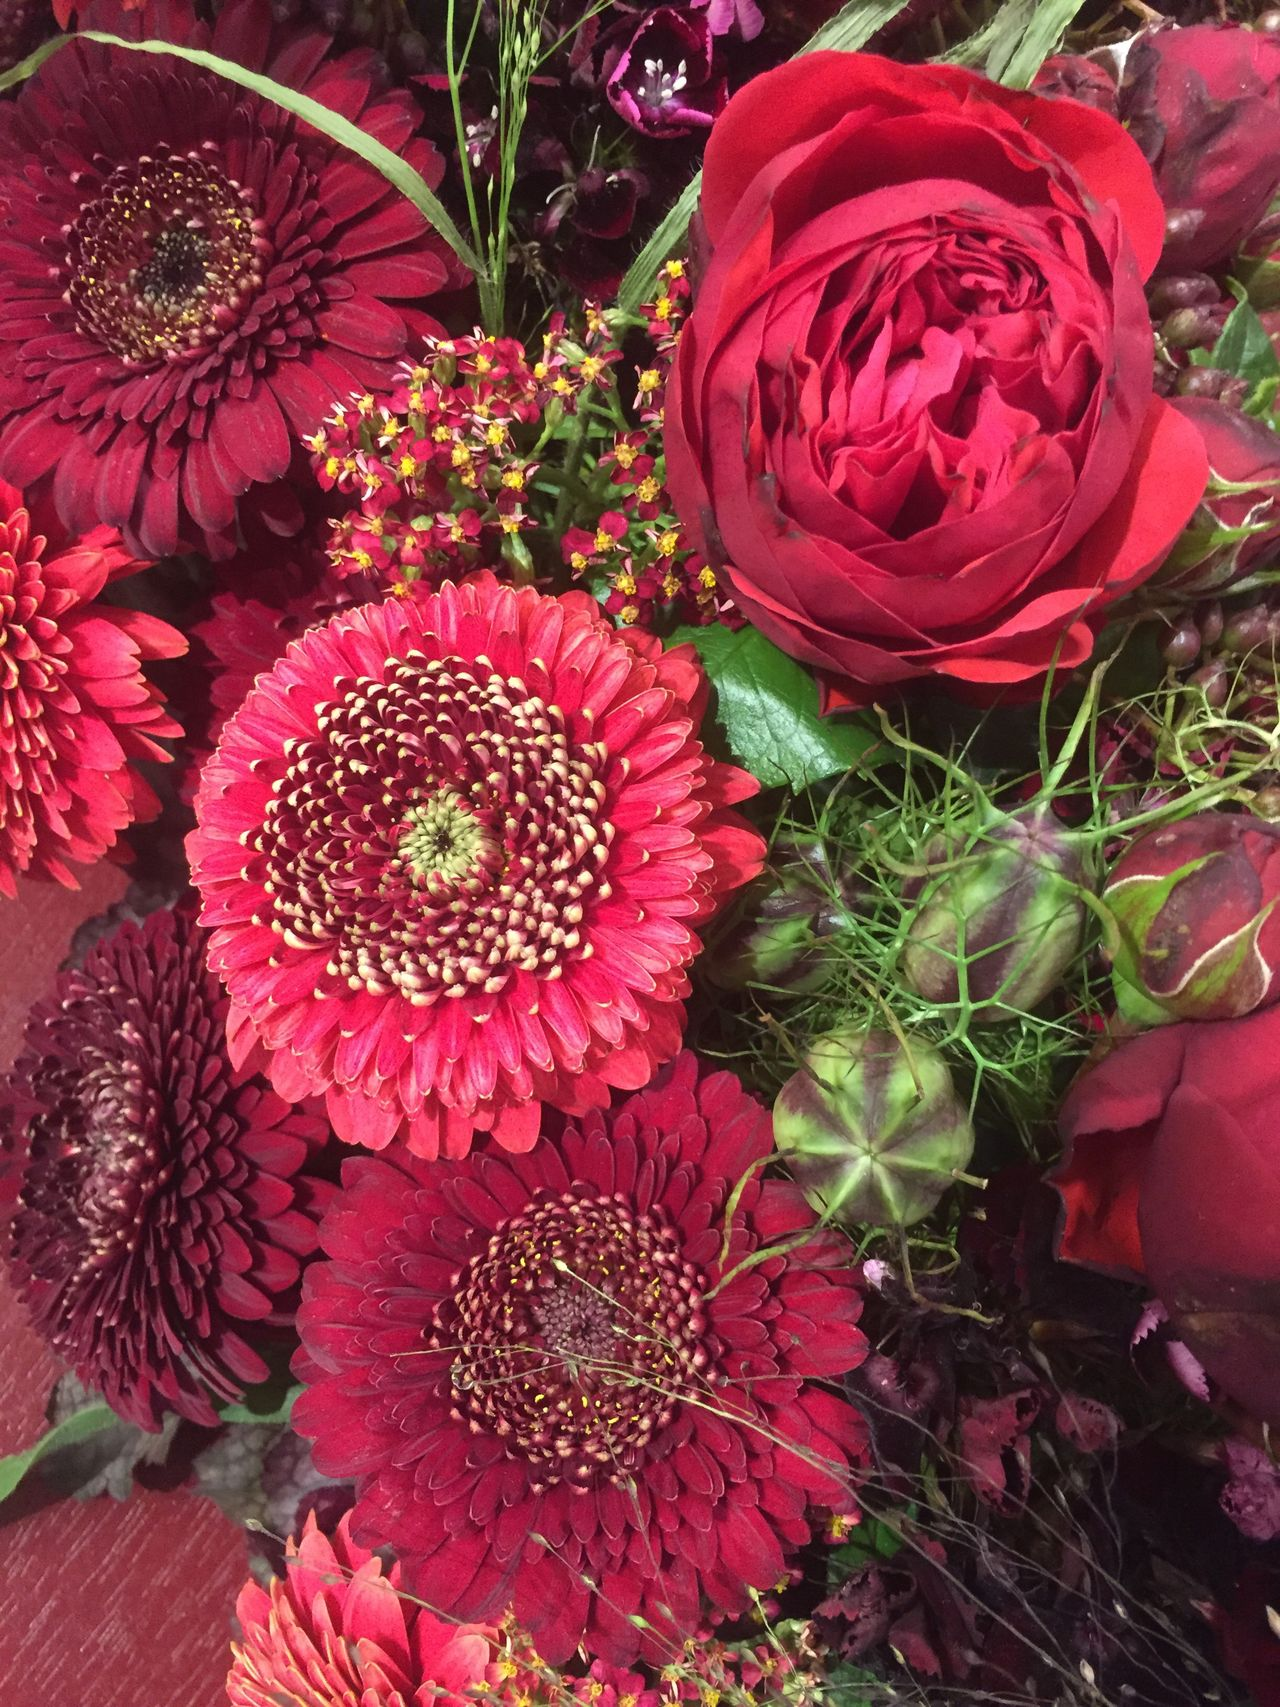 Red flower bouquet with roses Flower Growth Beauty In Nature High Angle View Nature No People Red Freshness Fragility Day Outdoors Flower Head Close-up Valentine's Day  Mother's Day Bouquet Nature Rose - Flower